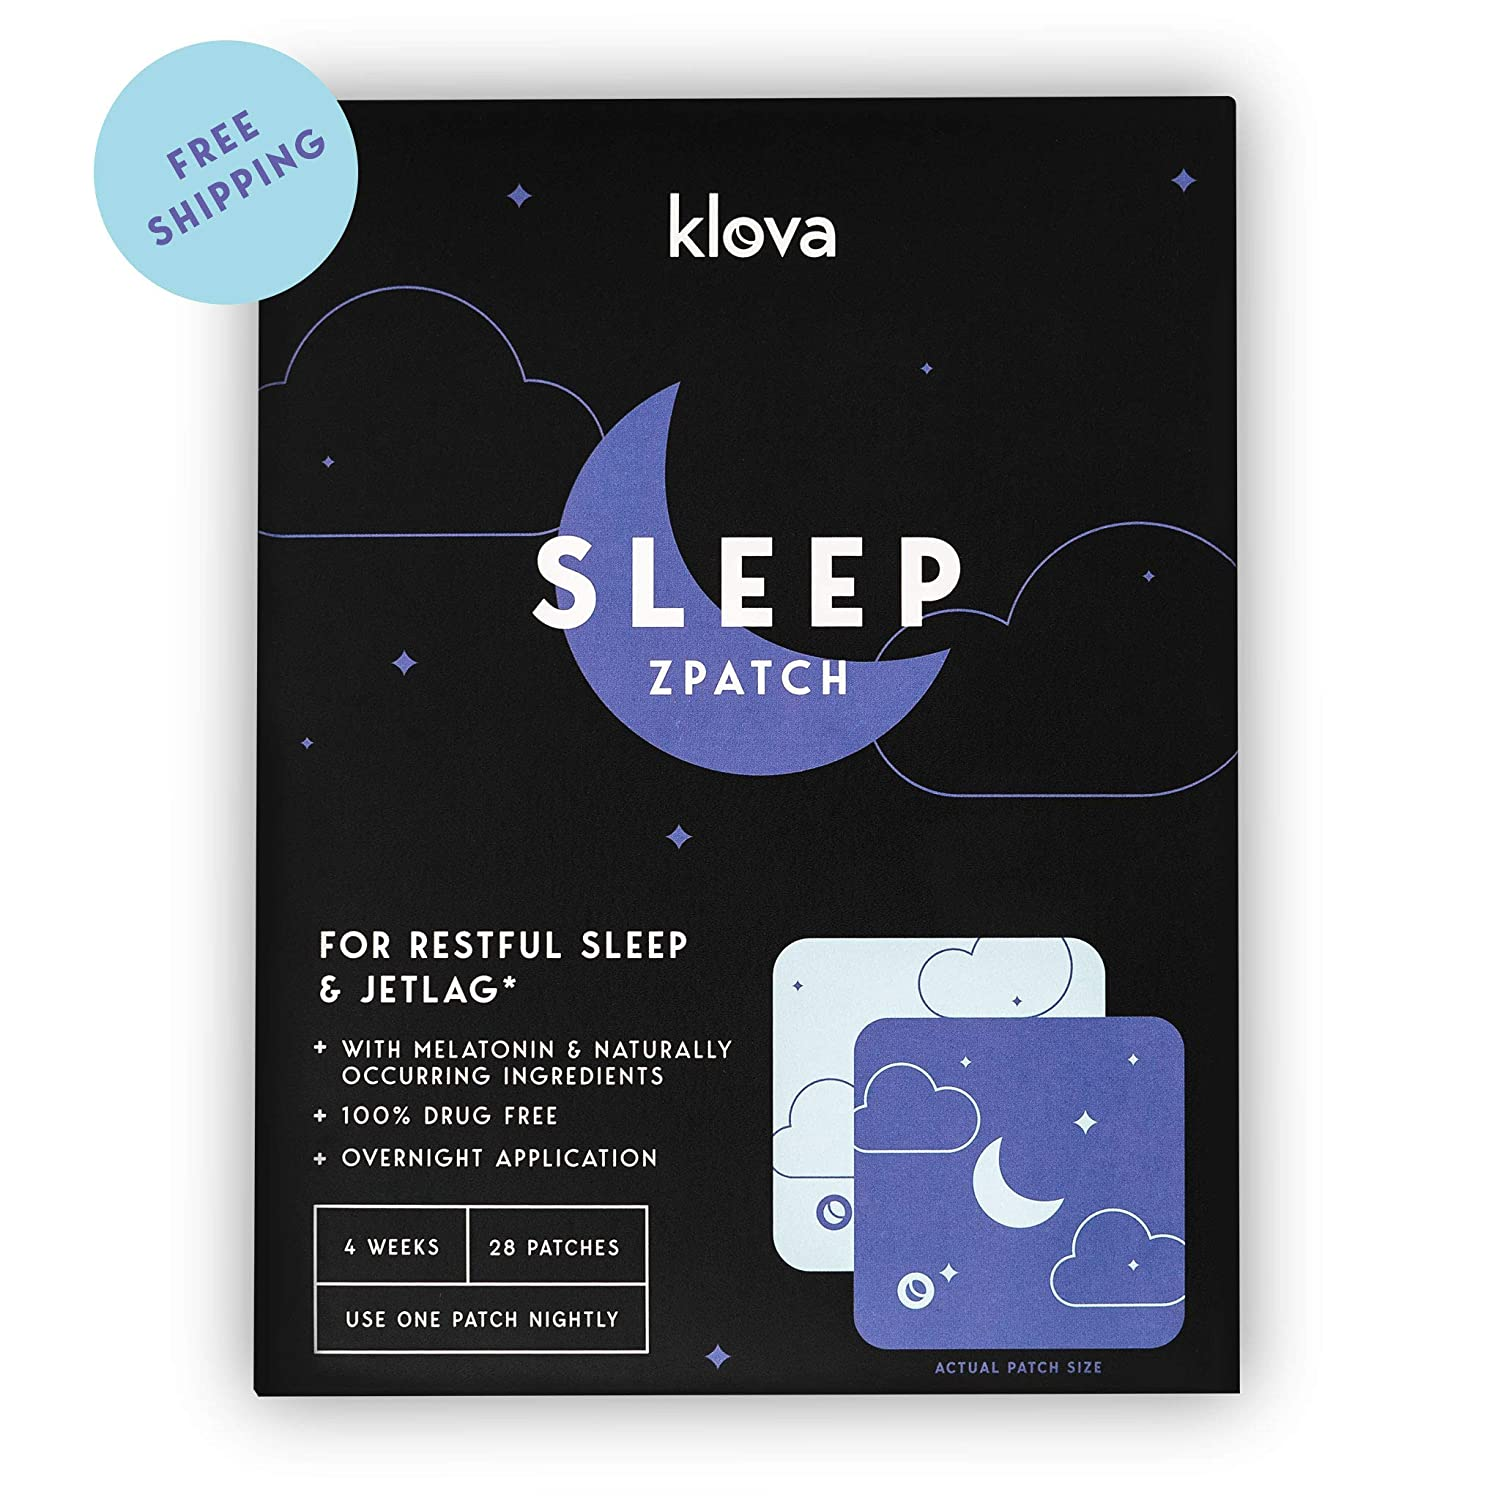 935f22a6e02e8 Amazon.com: Klova Sleep Patch with Melatonin and Natural Ingredients  Promotes restful Sleep and eliminates Jet lag: Health & Personal Care